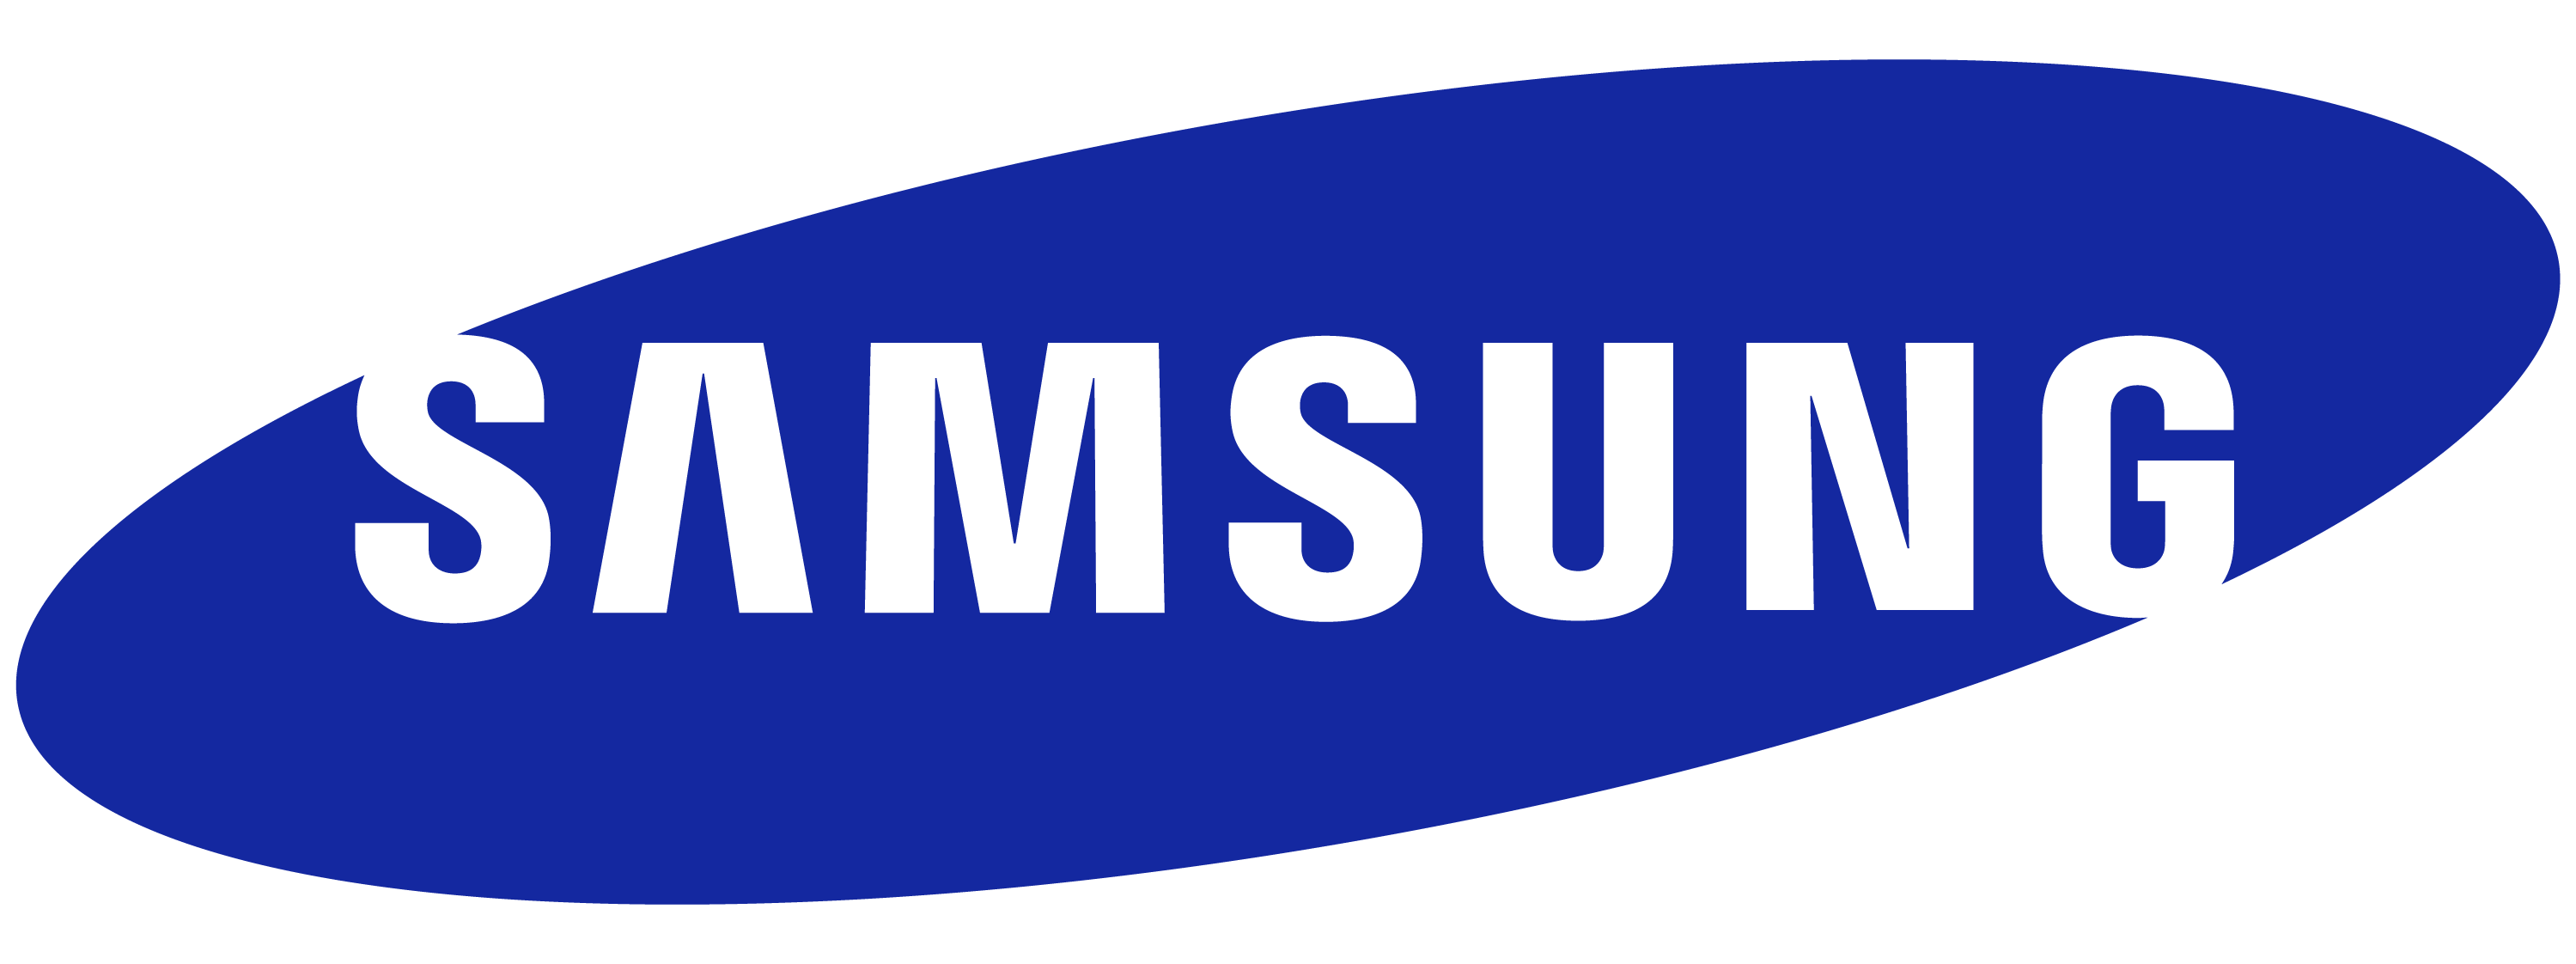 Samsung logo_Eyetech Security Systems